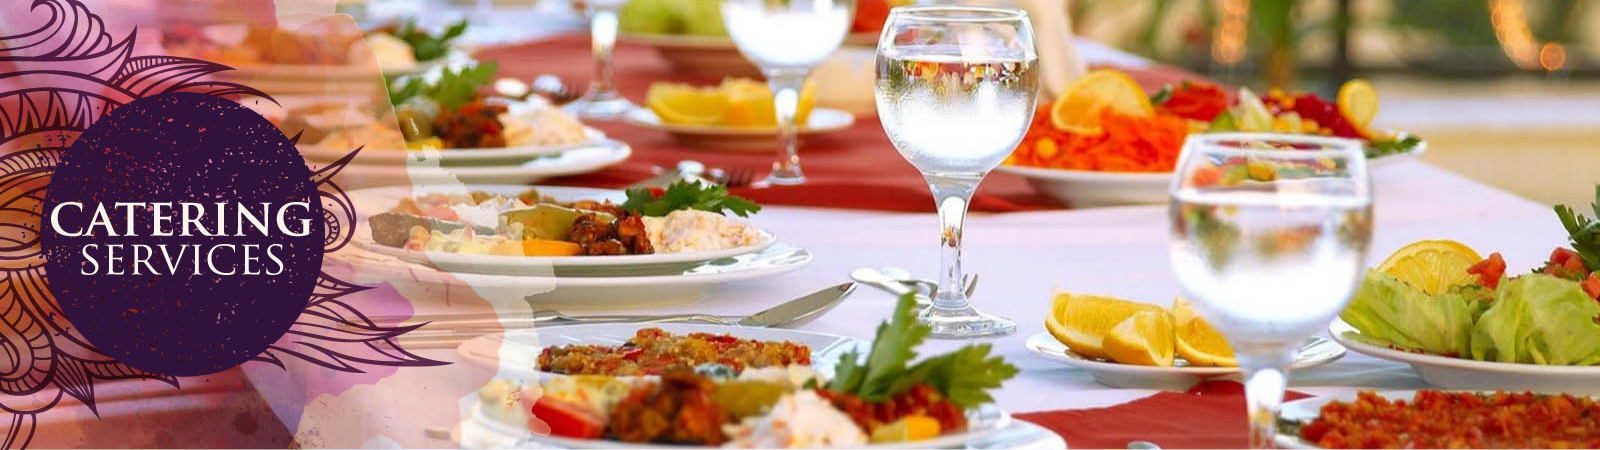 Wedding catering services chennai best caterers in for Best catering services